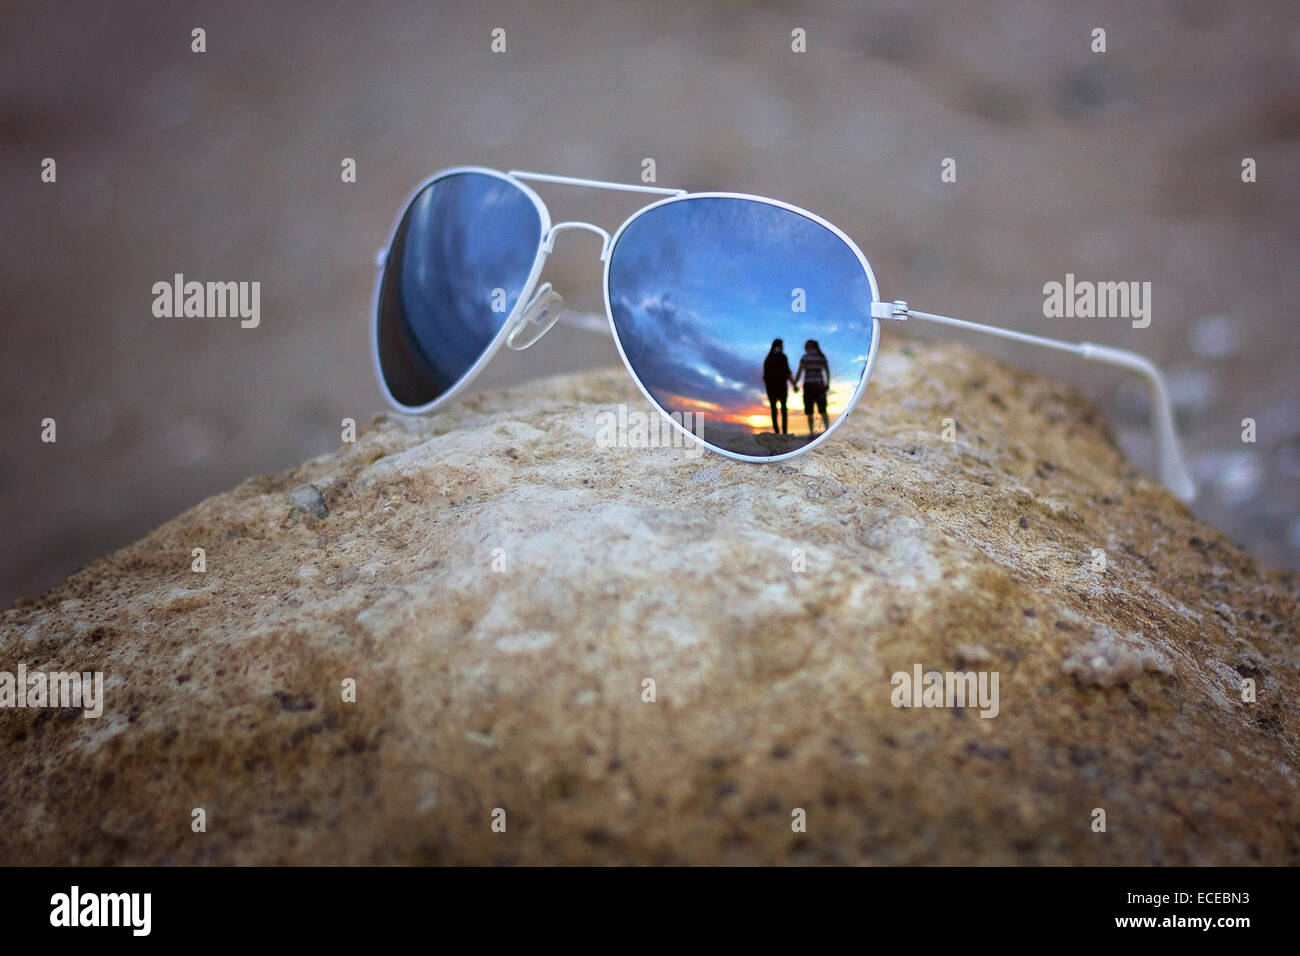 Reflection of couple in sunglasses Stock Photo